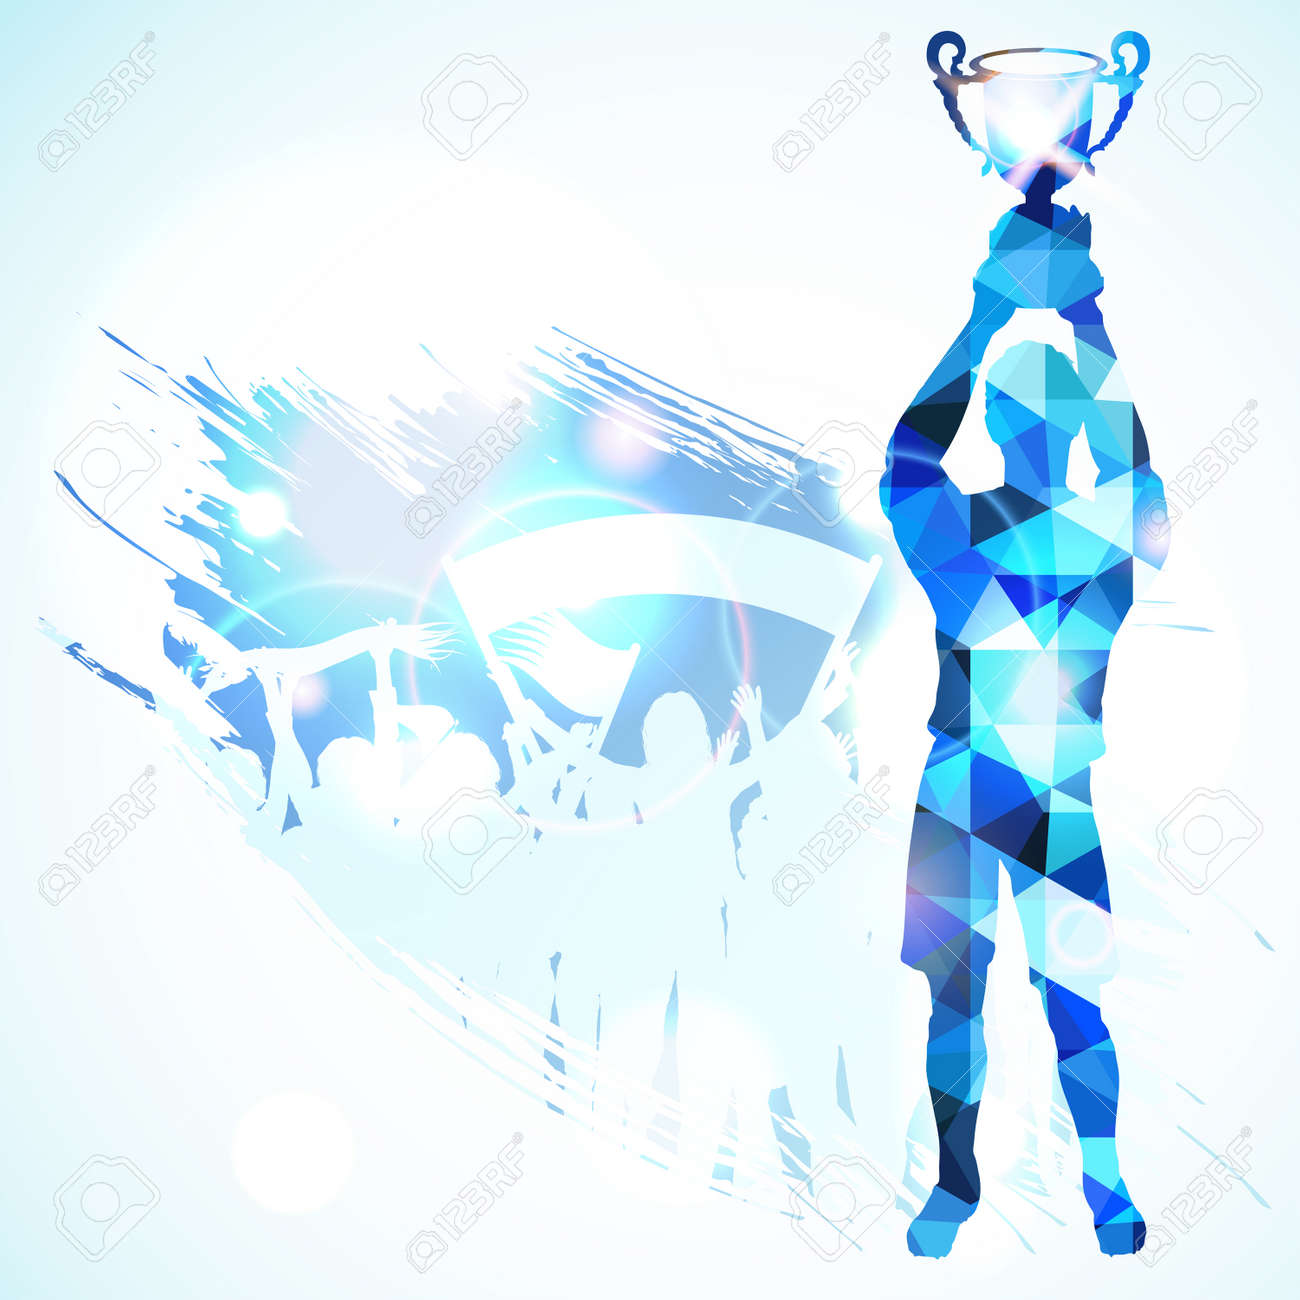 Silhouettes Soccer Player with Trophy and Fans in Mosaic Pattern on grunge background, vector illustration. - 33750404